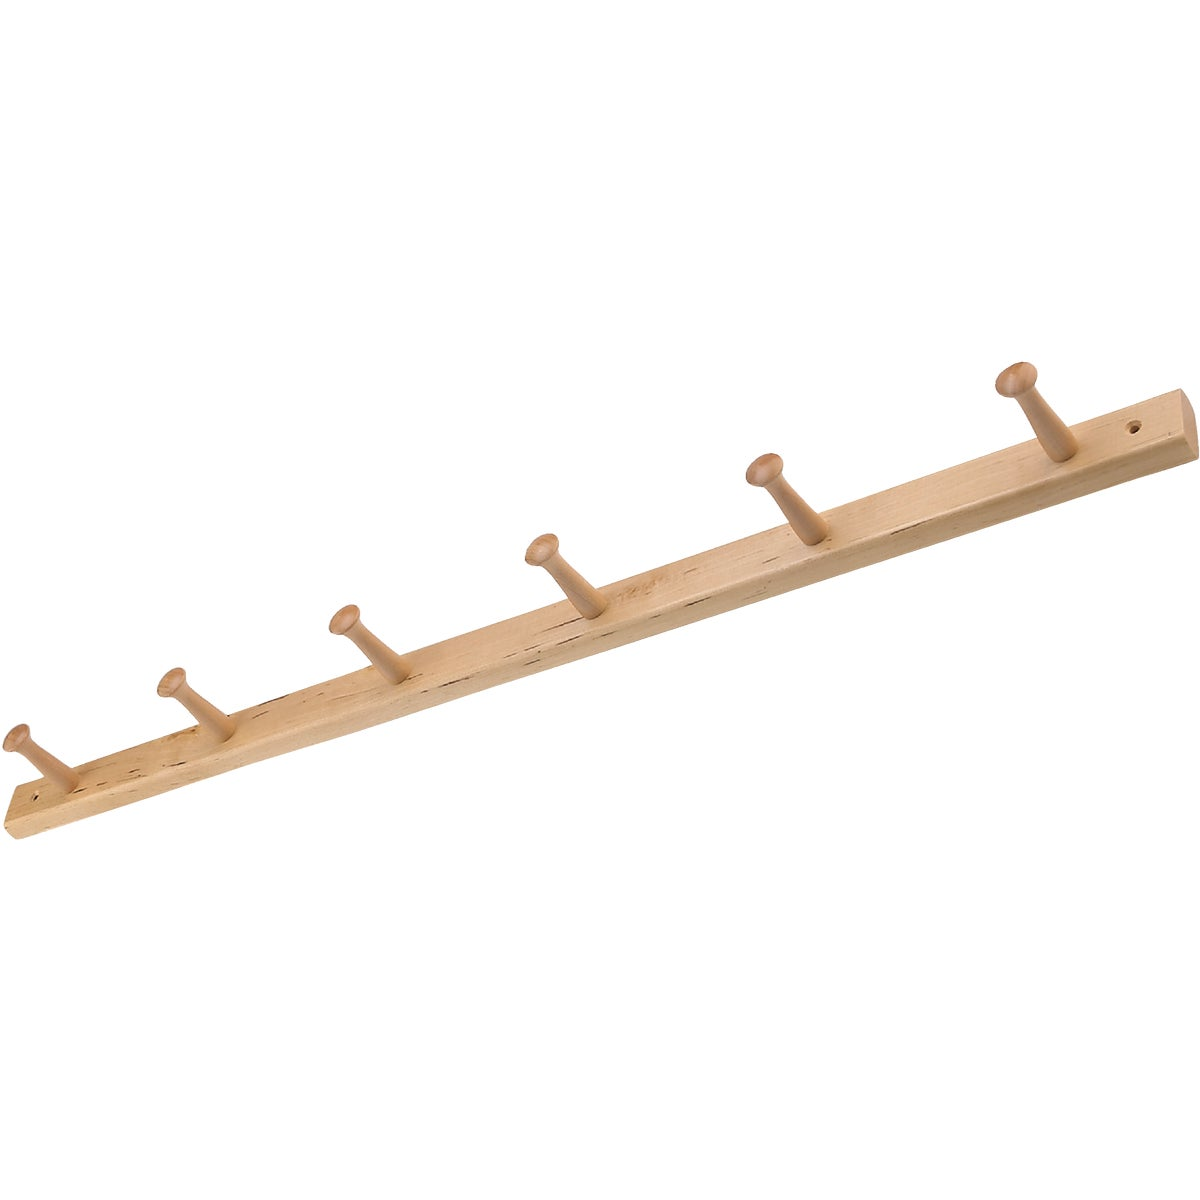 6 PEG WOOD RACK - 91528 by Interdesign Inc